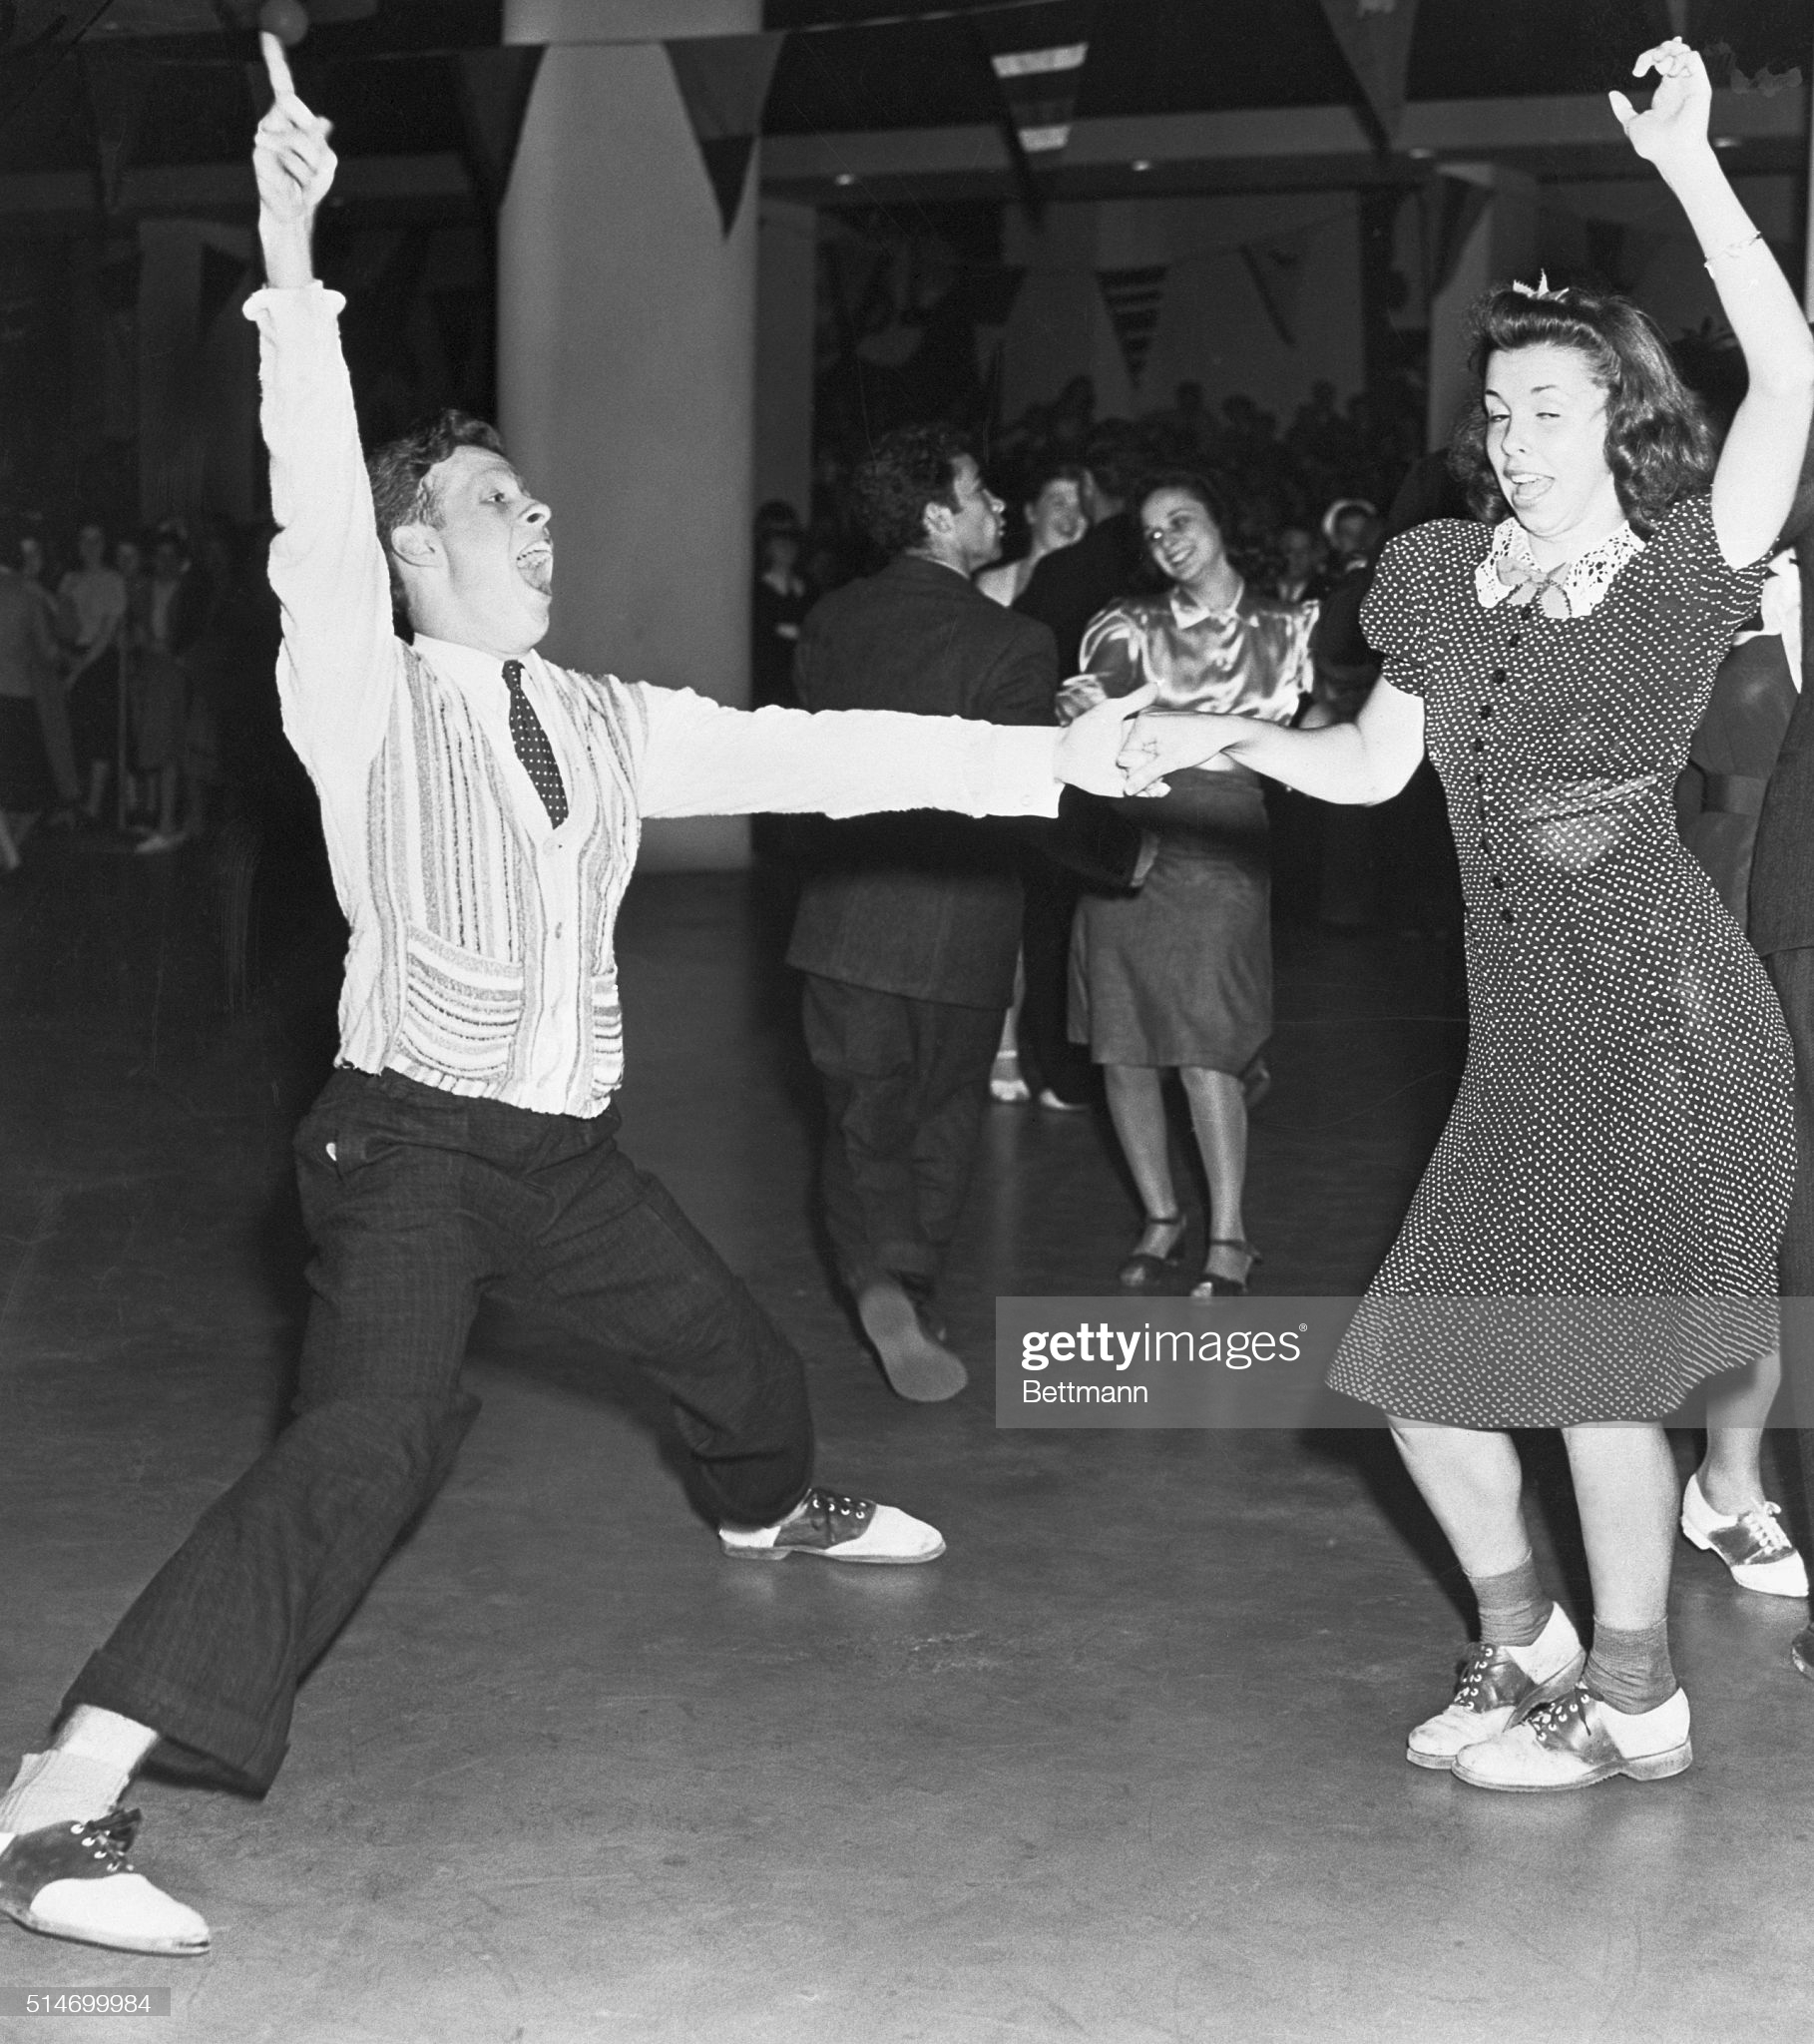 gettyimages jitterbug